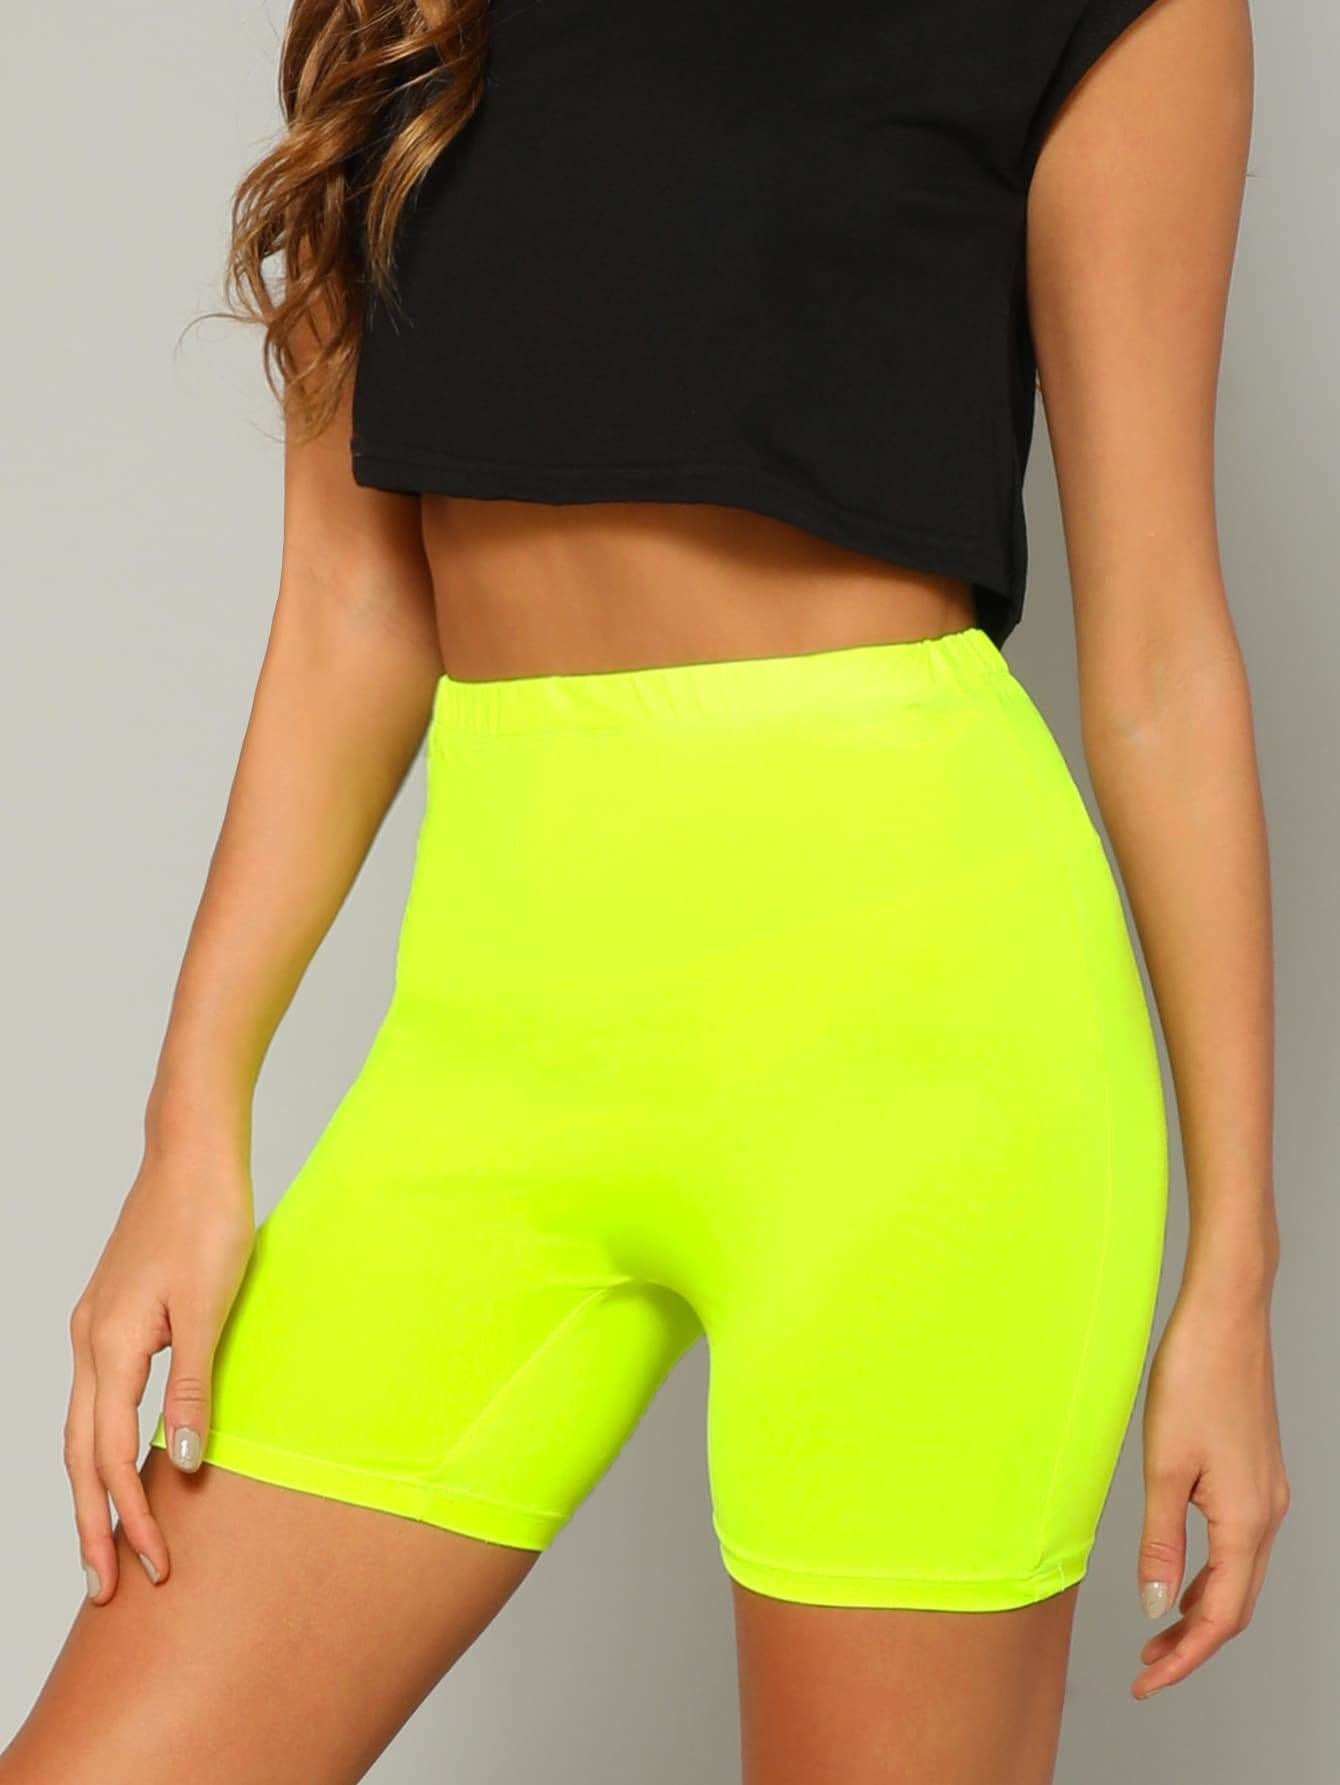 Neon Yellow Solid Leggings Shorts - Fittness Leggings